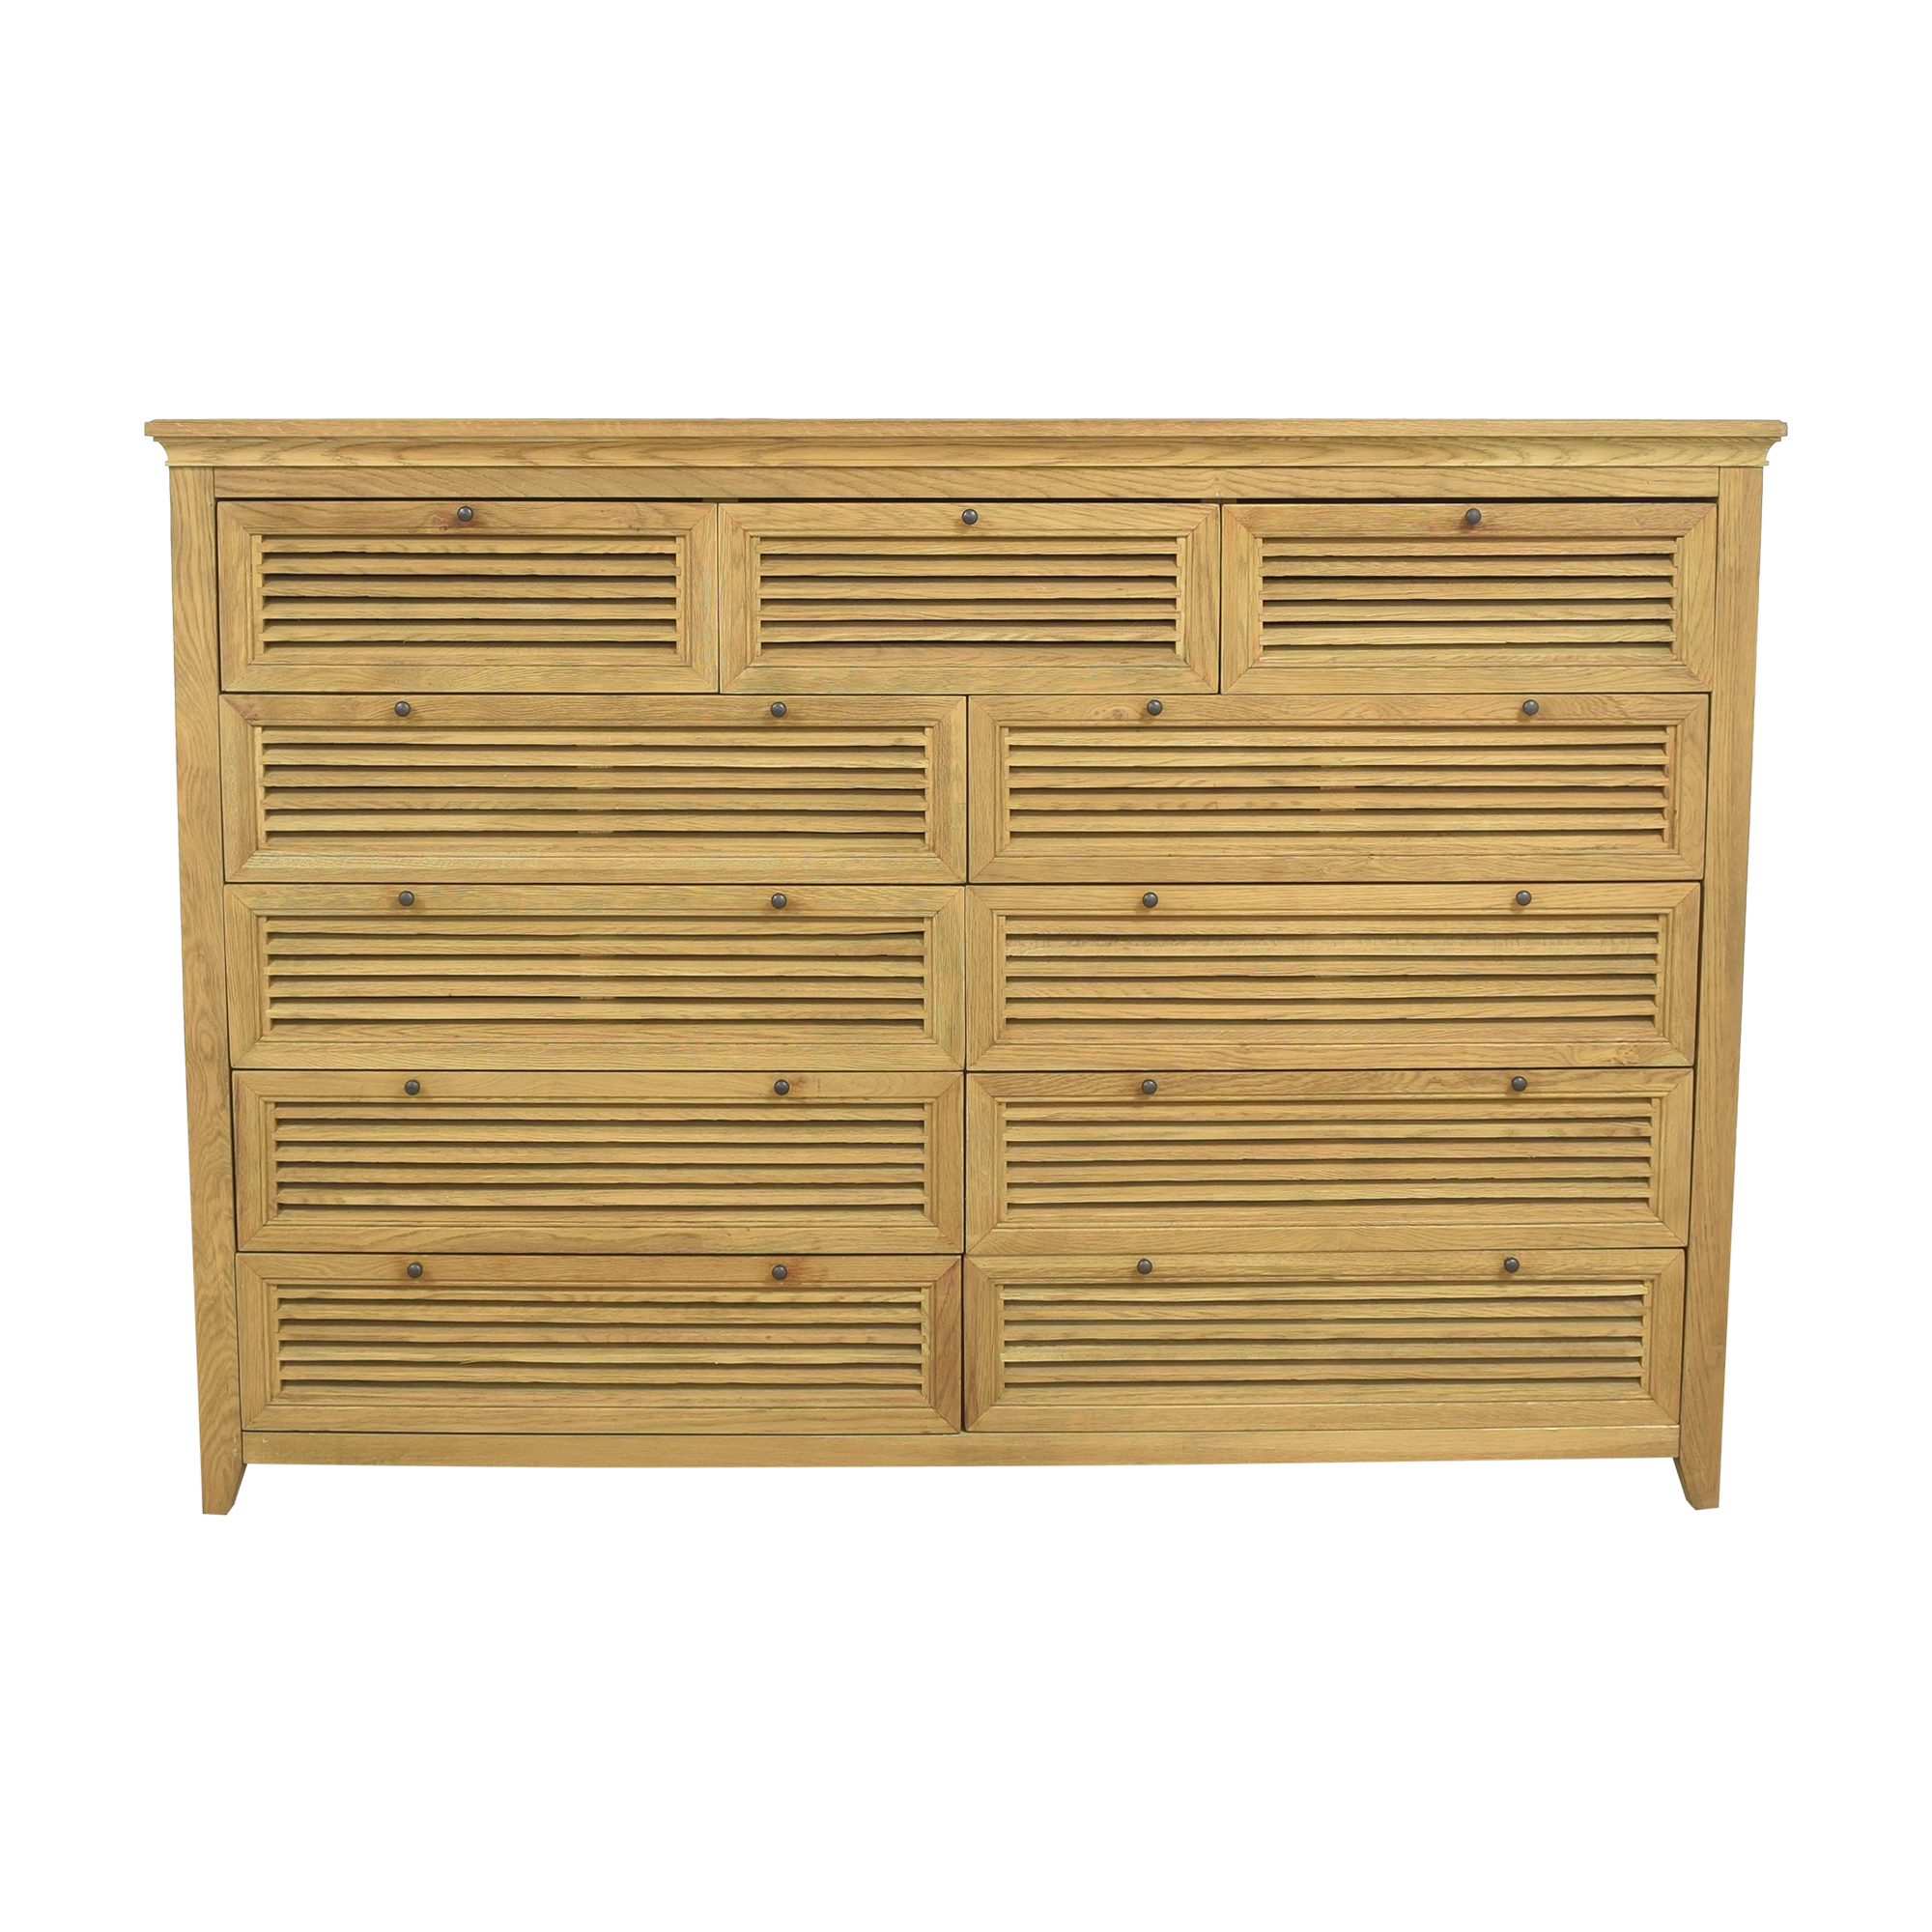 shop Restoration Hardware Shutter Eleven Drawer Dresser Restoration Hardware Dressers